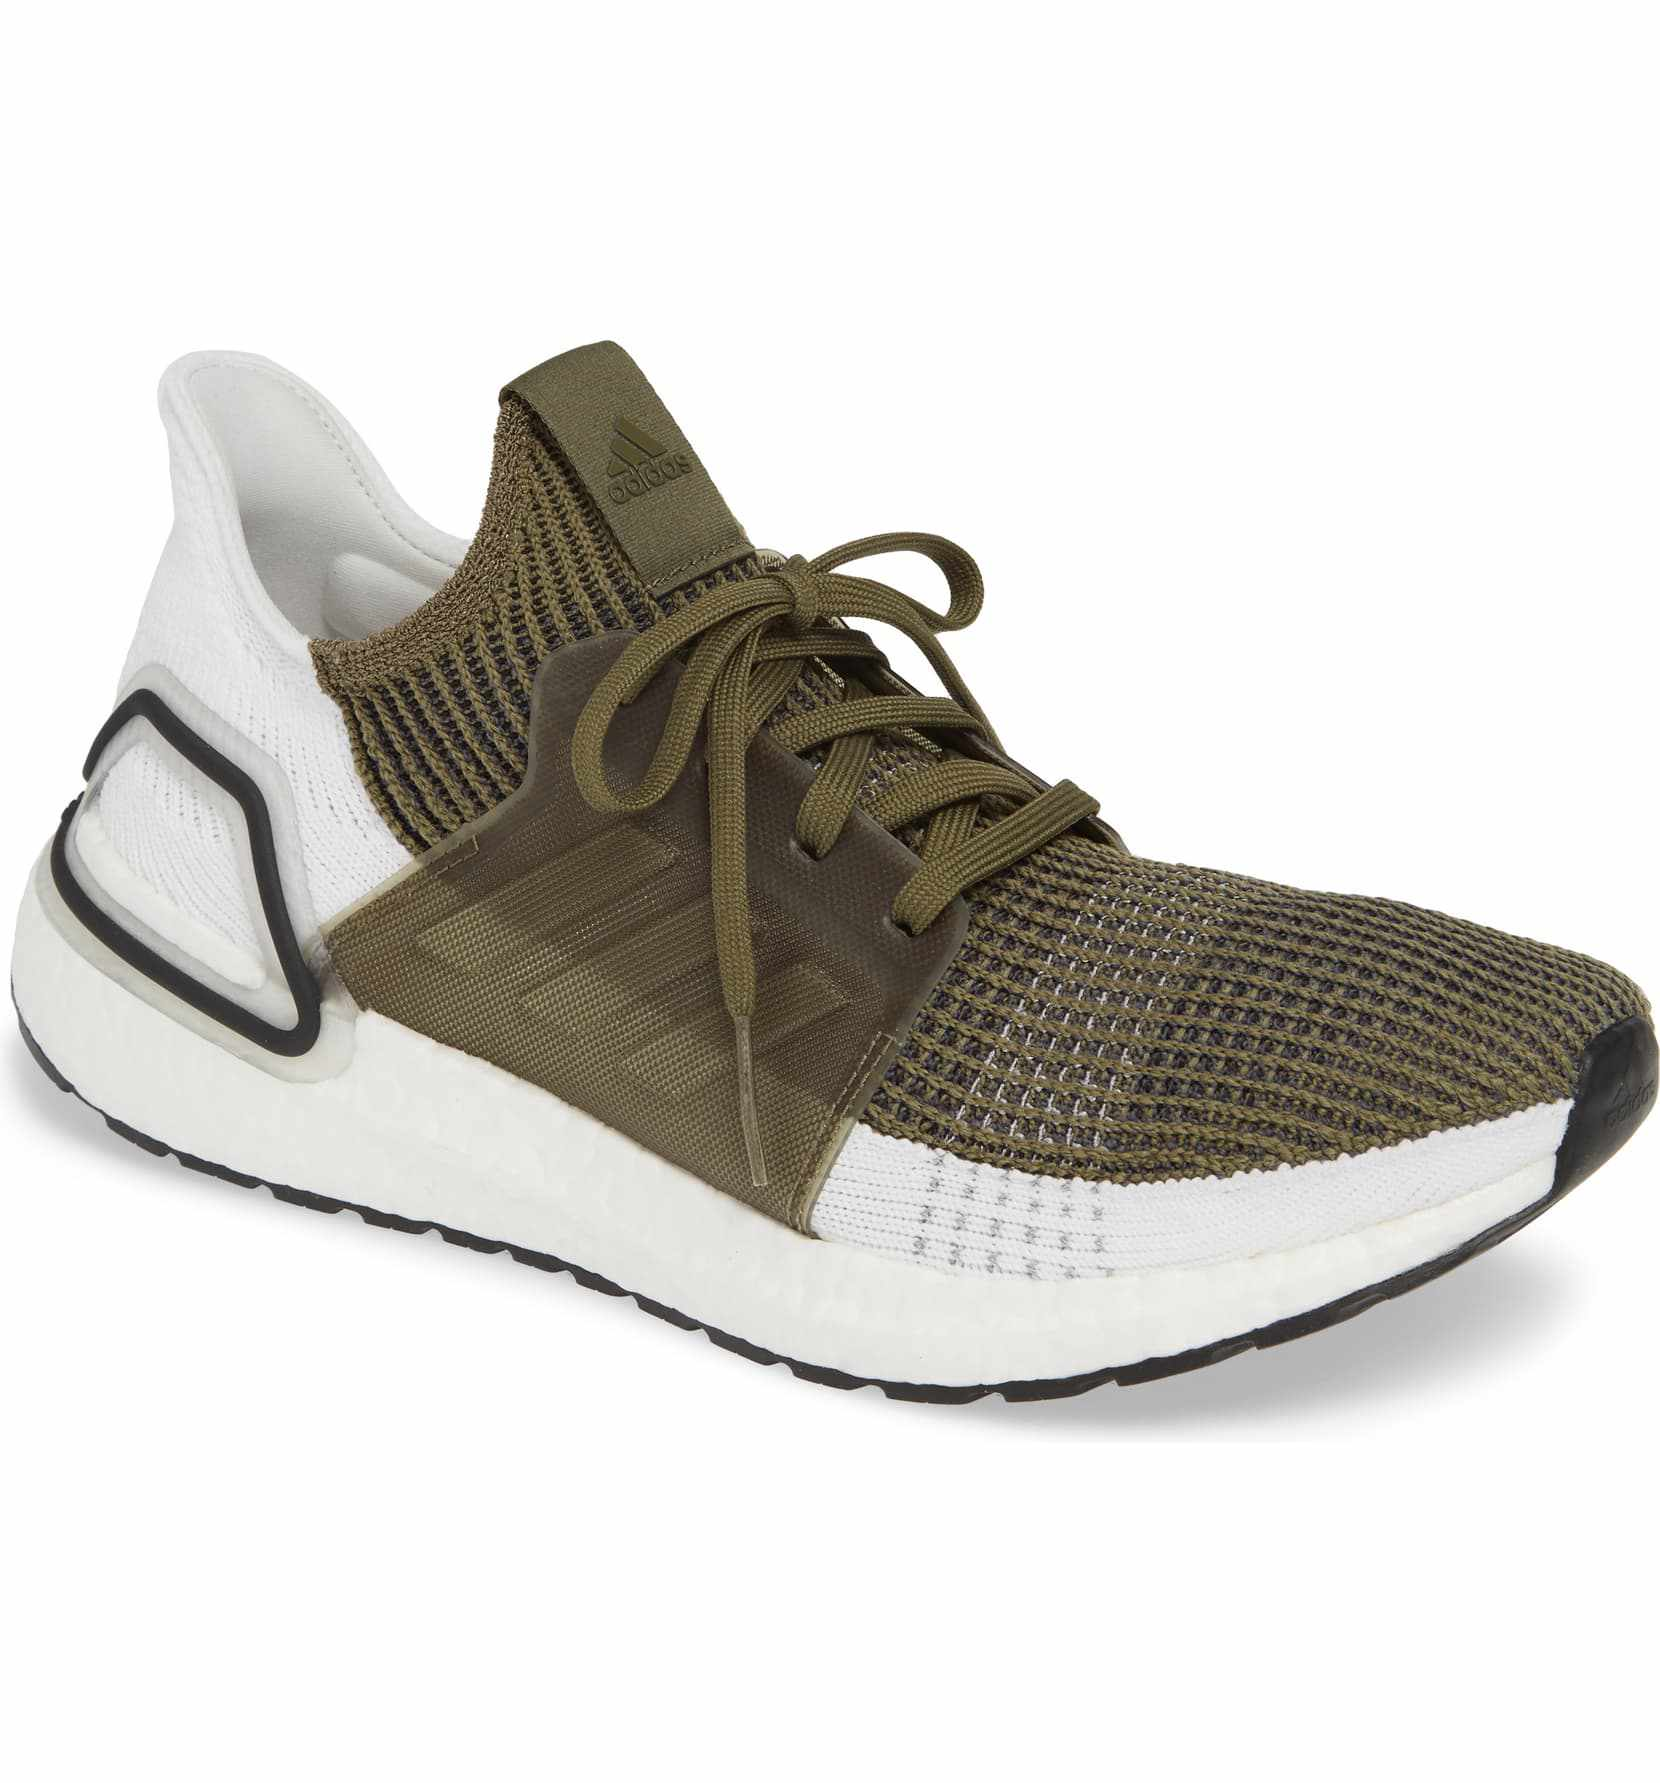 UltraBoost 19 Running Shoe